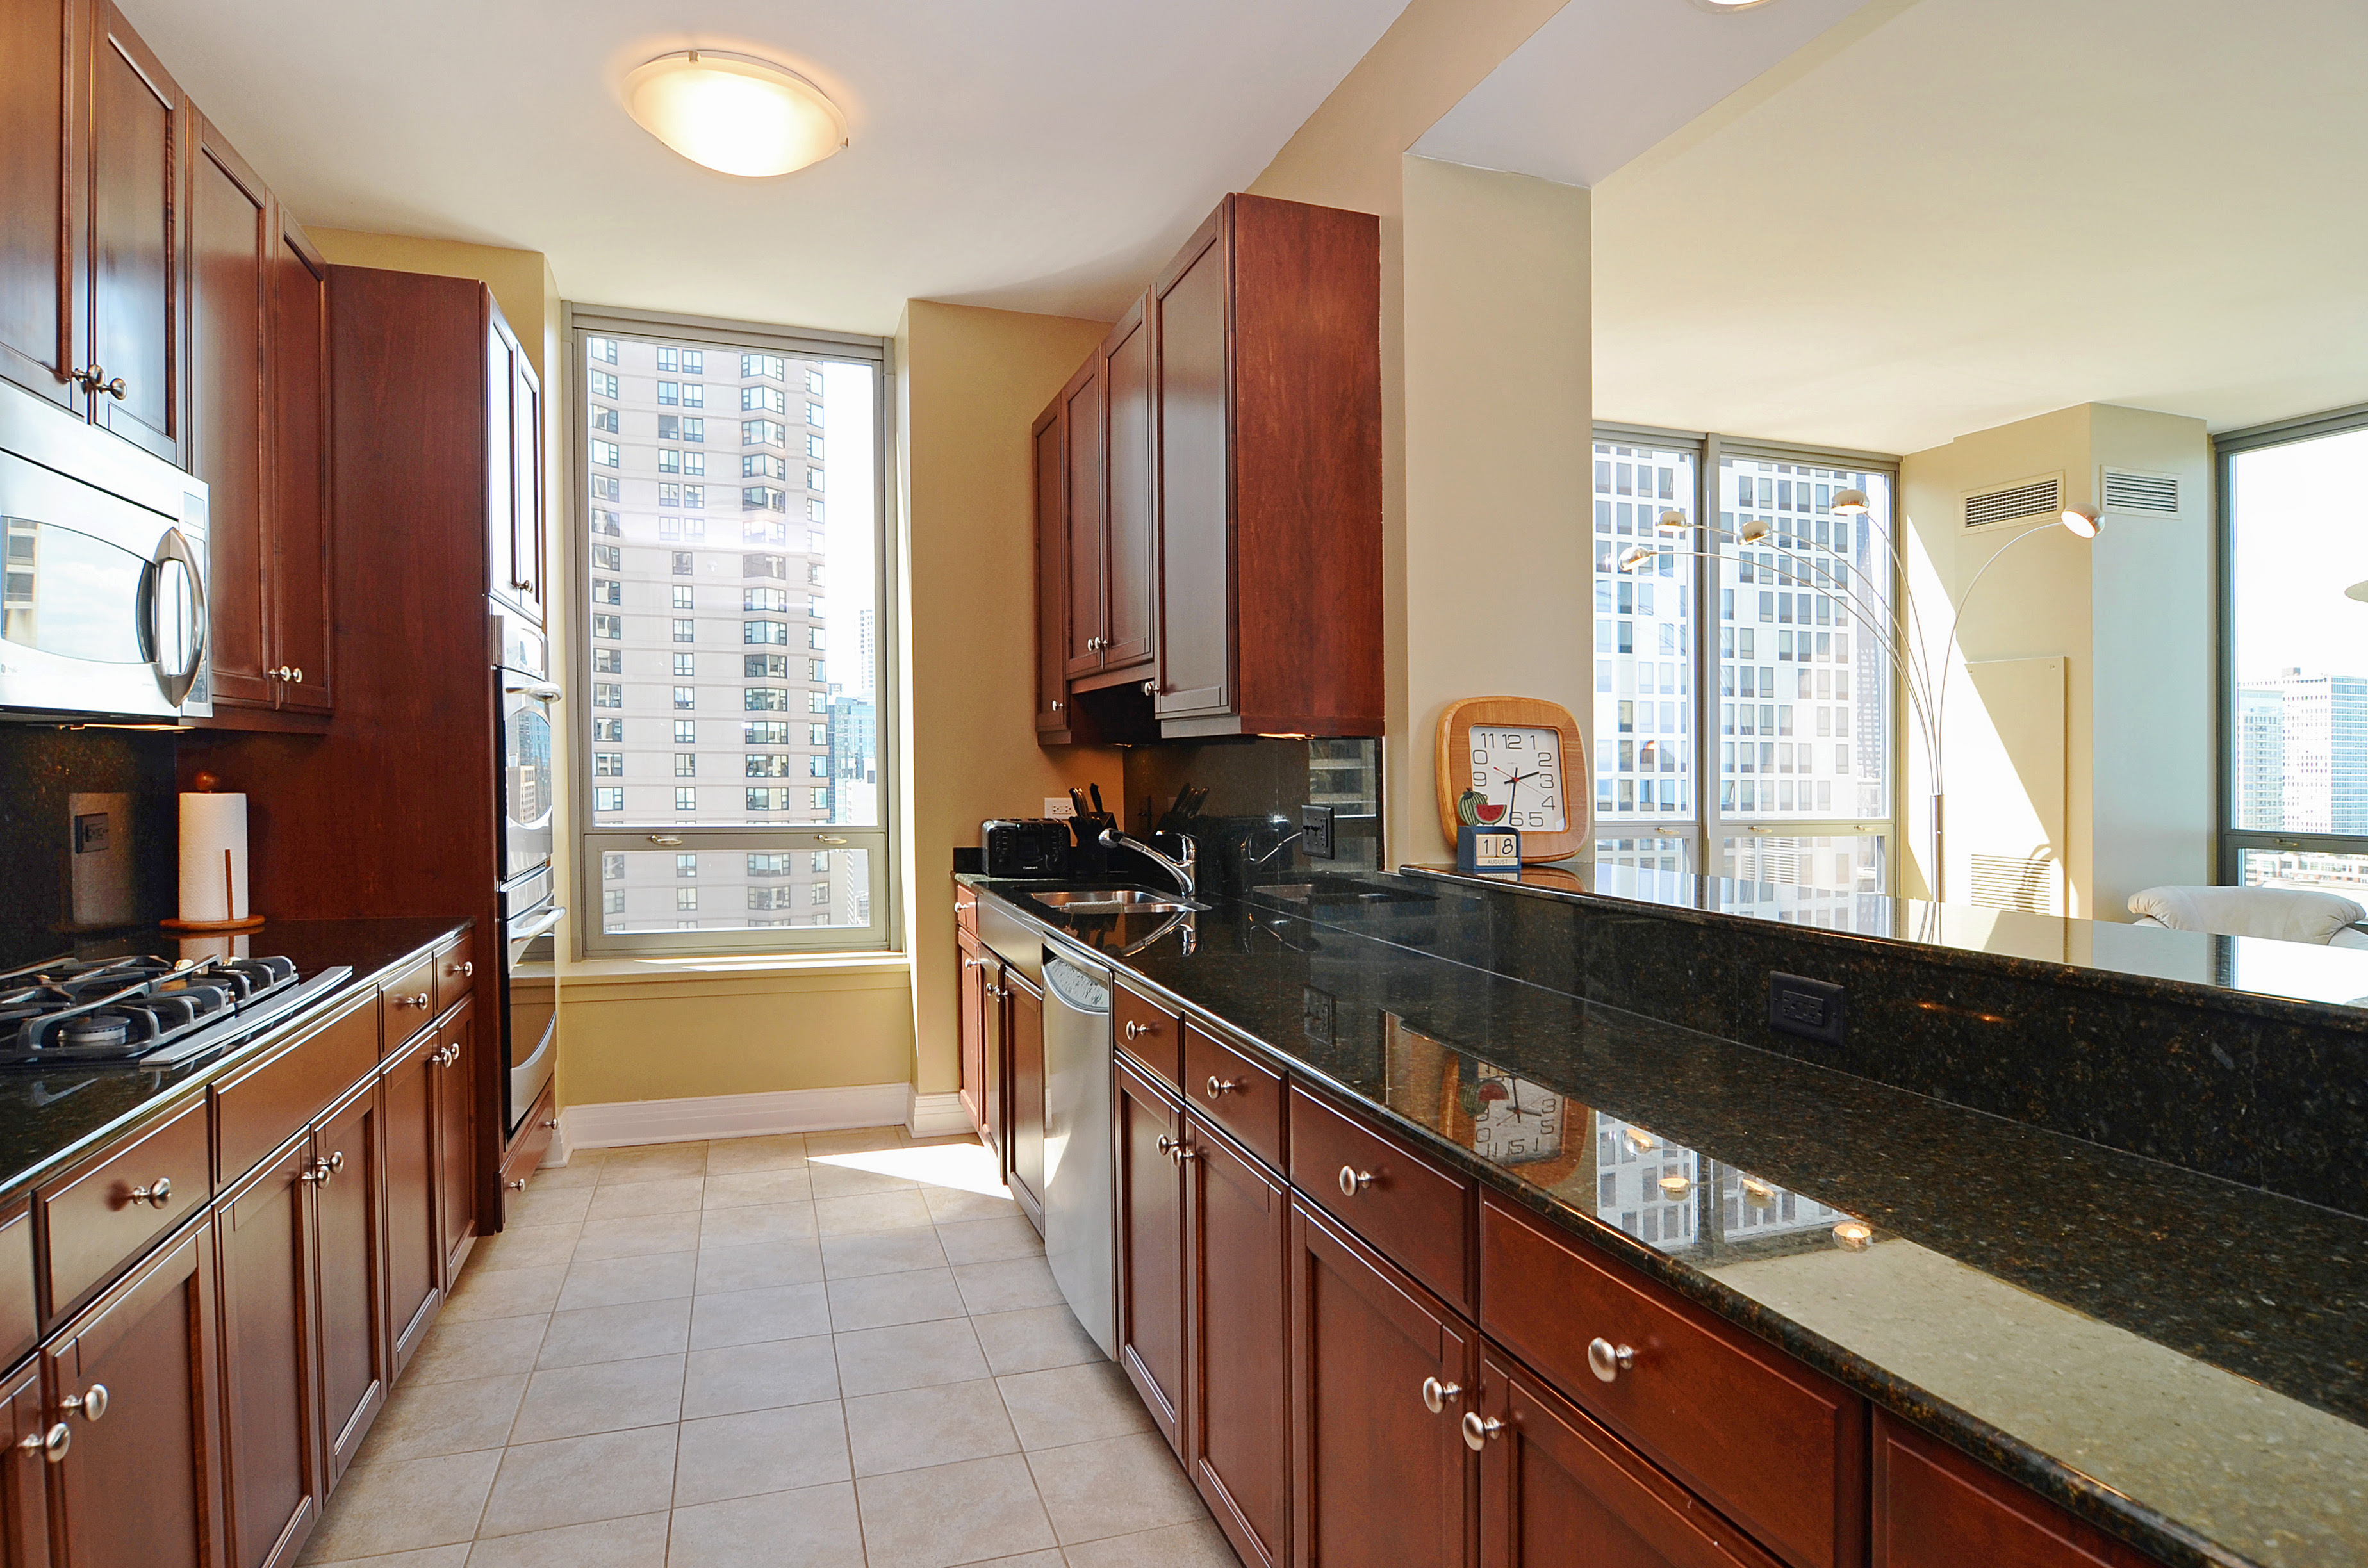 U Shaped Kitchens | Kitchens and Designs